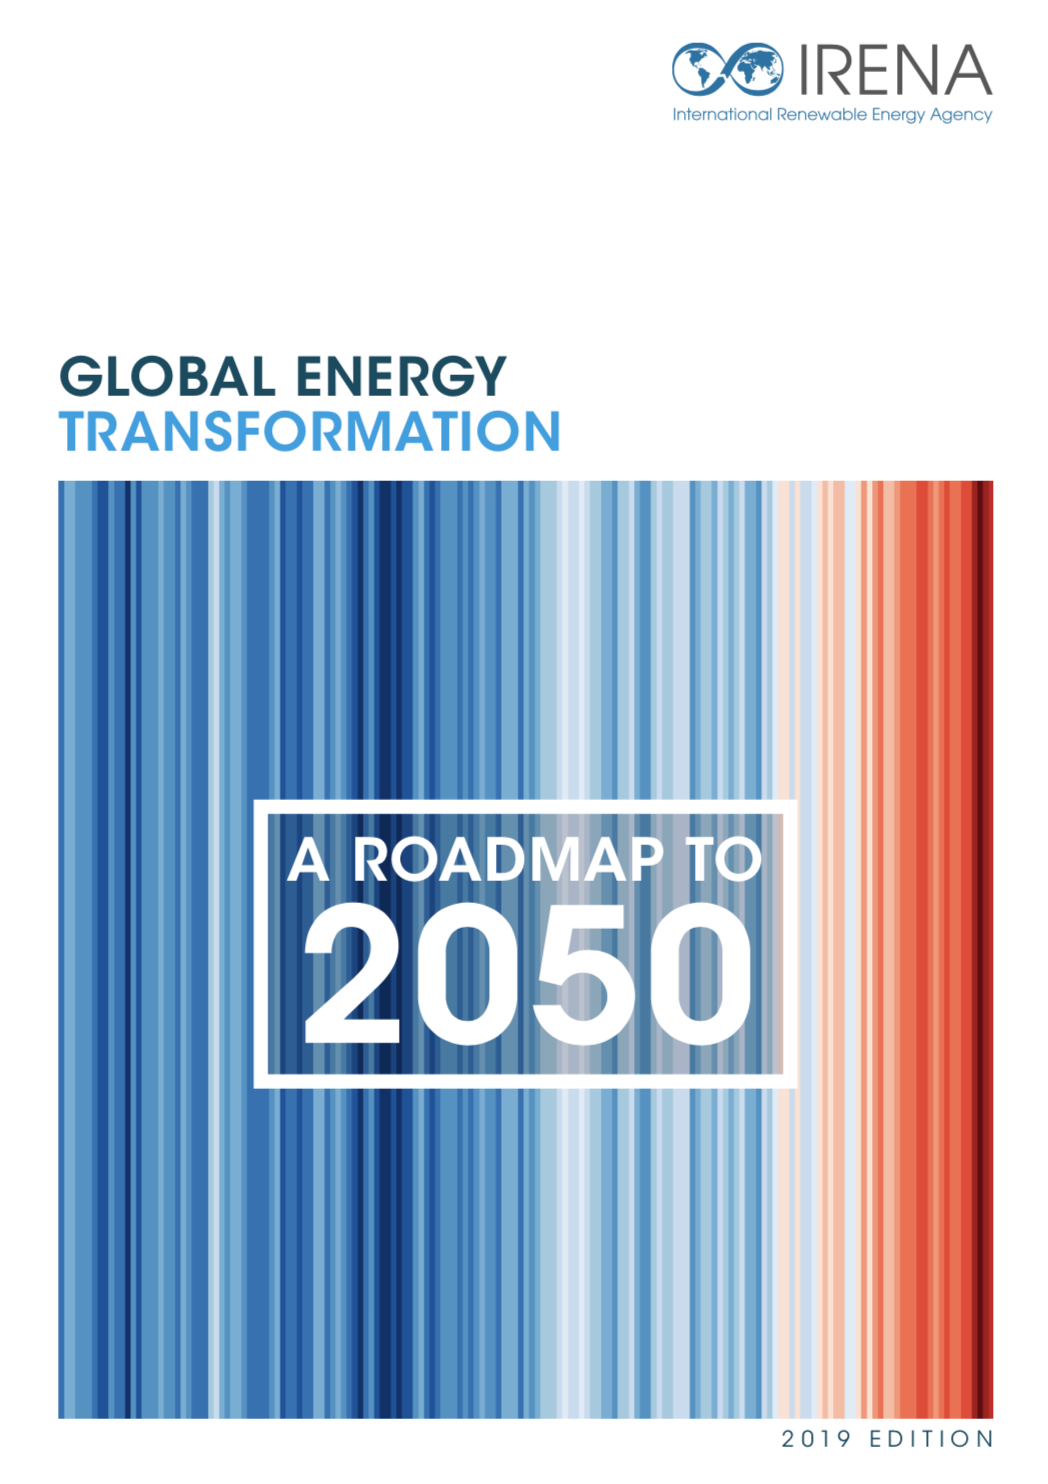 """GLOBAL ENERGY TRANSFORMATION: A ROADMAP TO 2050. INTERNATIONAL RENEWABLE ENERGY AGENCY - """"Renewable energy could meet 86% of global power demand by 2050, IRENA concludes."""" 9 April 2019, source edie newsroomIf policymakers, businesses and investors across the world collaborate to scale-up renewable energy and to electrify sectors such as transport and heavy industry, 86% of the global power demand could be met with clean energy by 2050, new research from the International Renewable Energy Agency (IRENA) has found. Download the report here."""